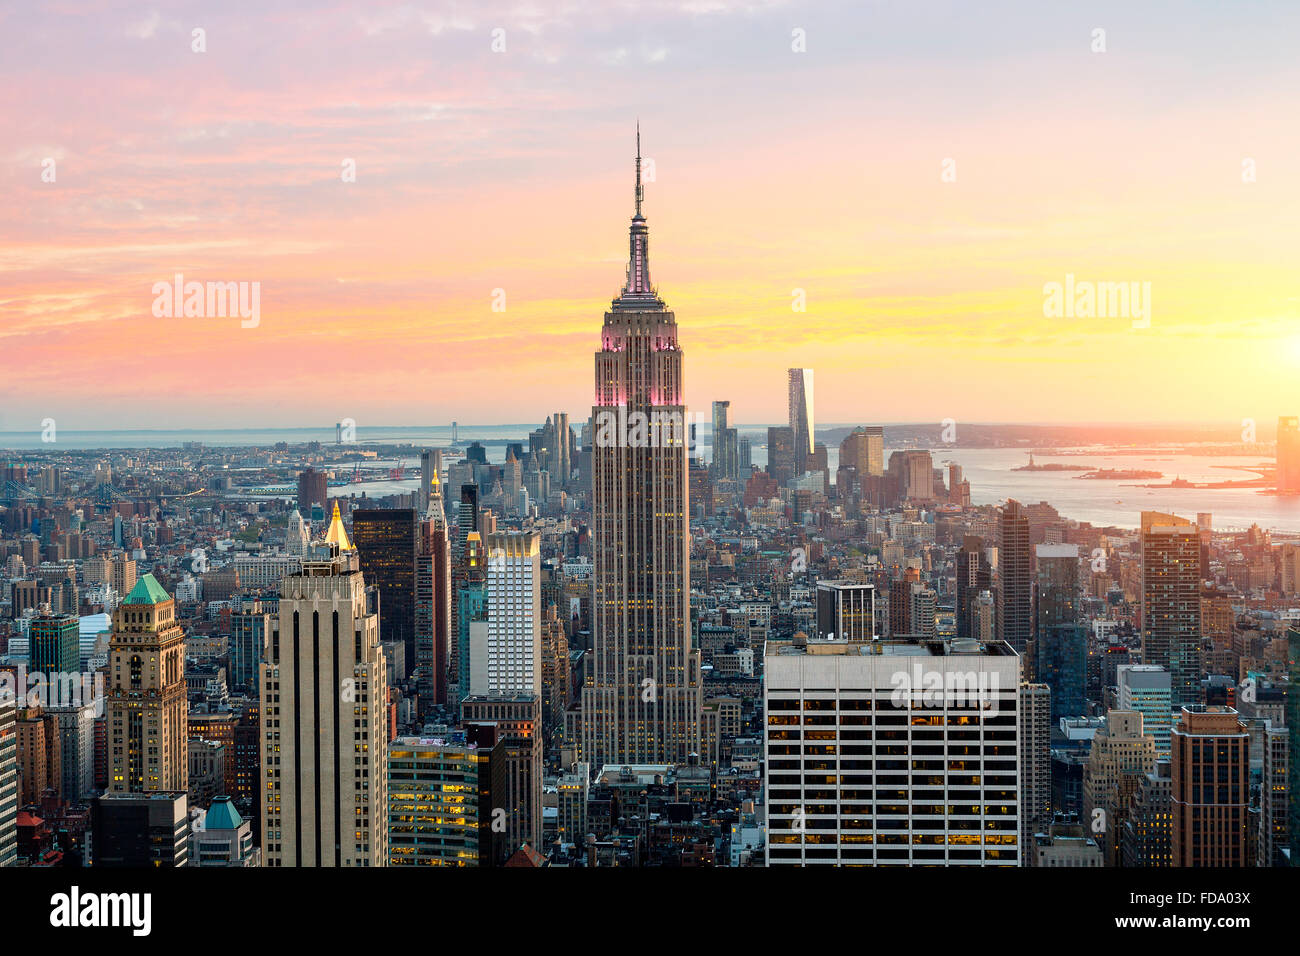 New York City Skyline mit Empire State Building Stockbild